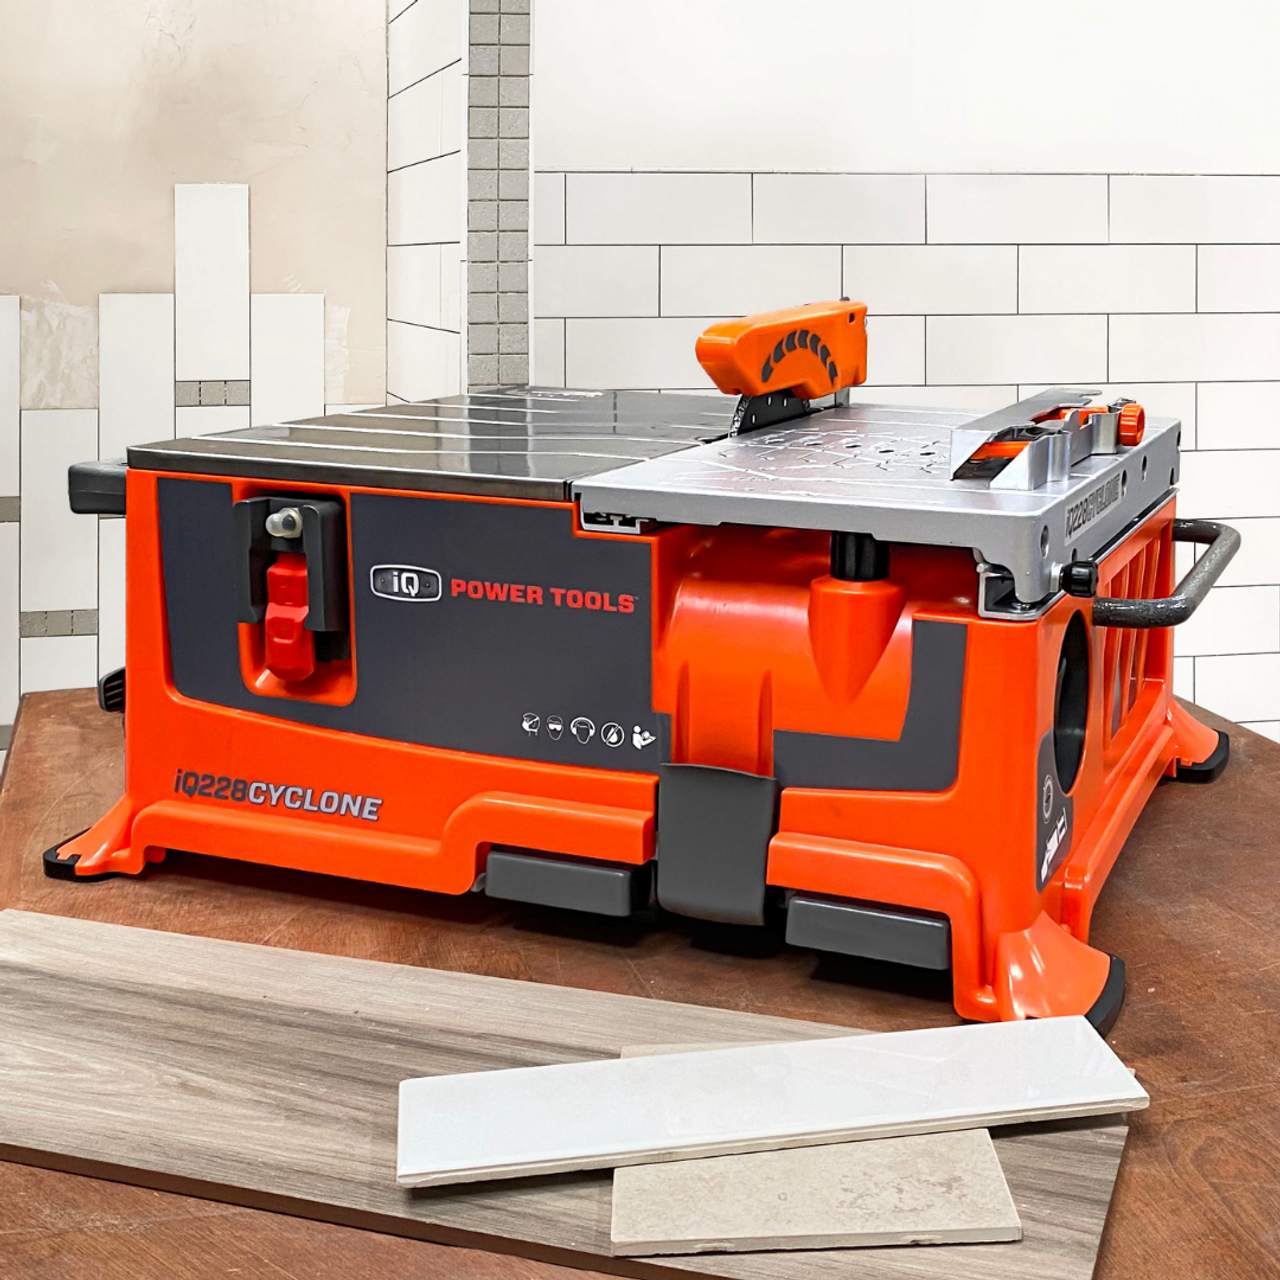 IQ Power Tools 228 Cyclone 180mm Dry Cutting Table Saw includes Blade